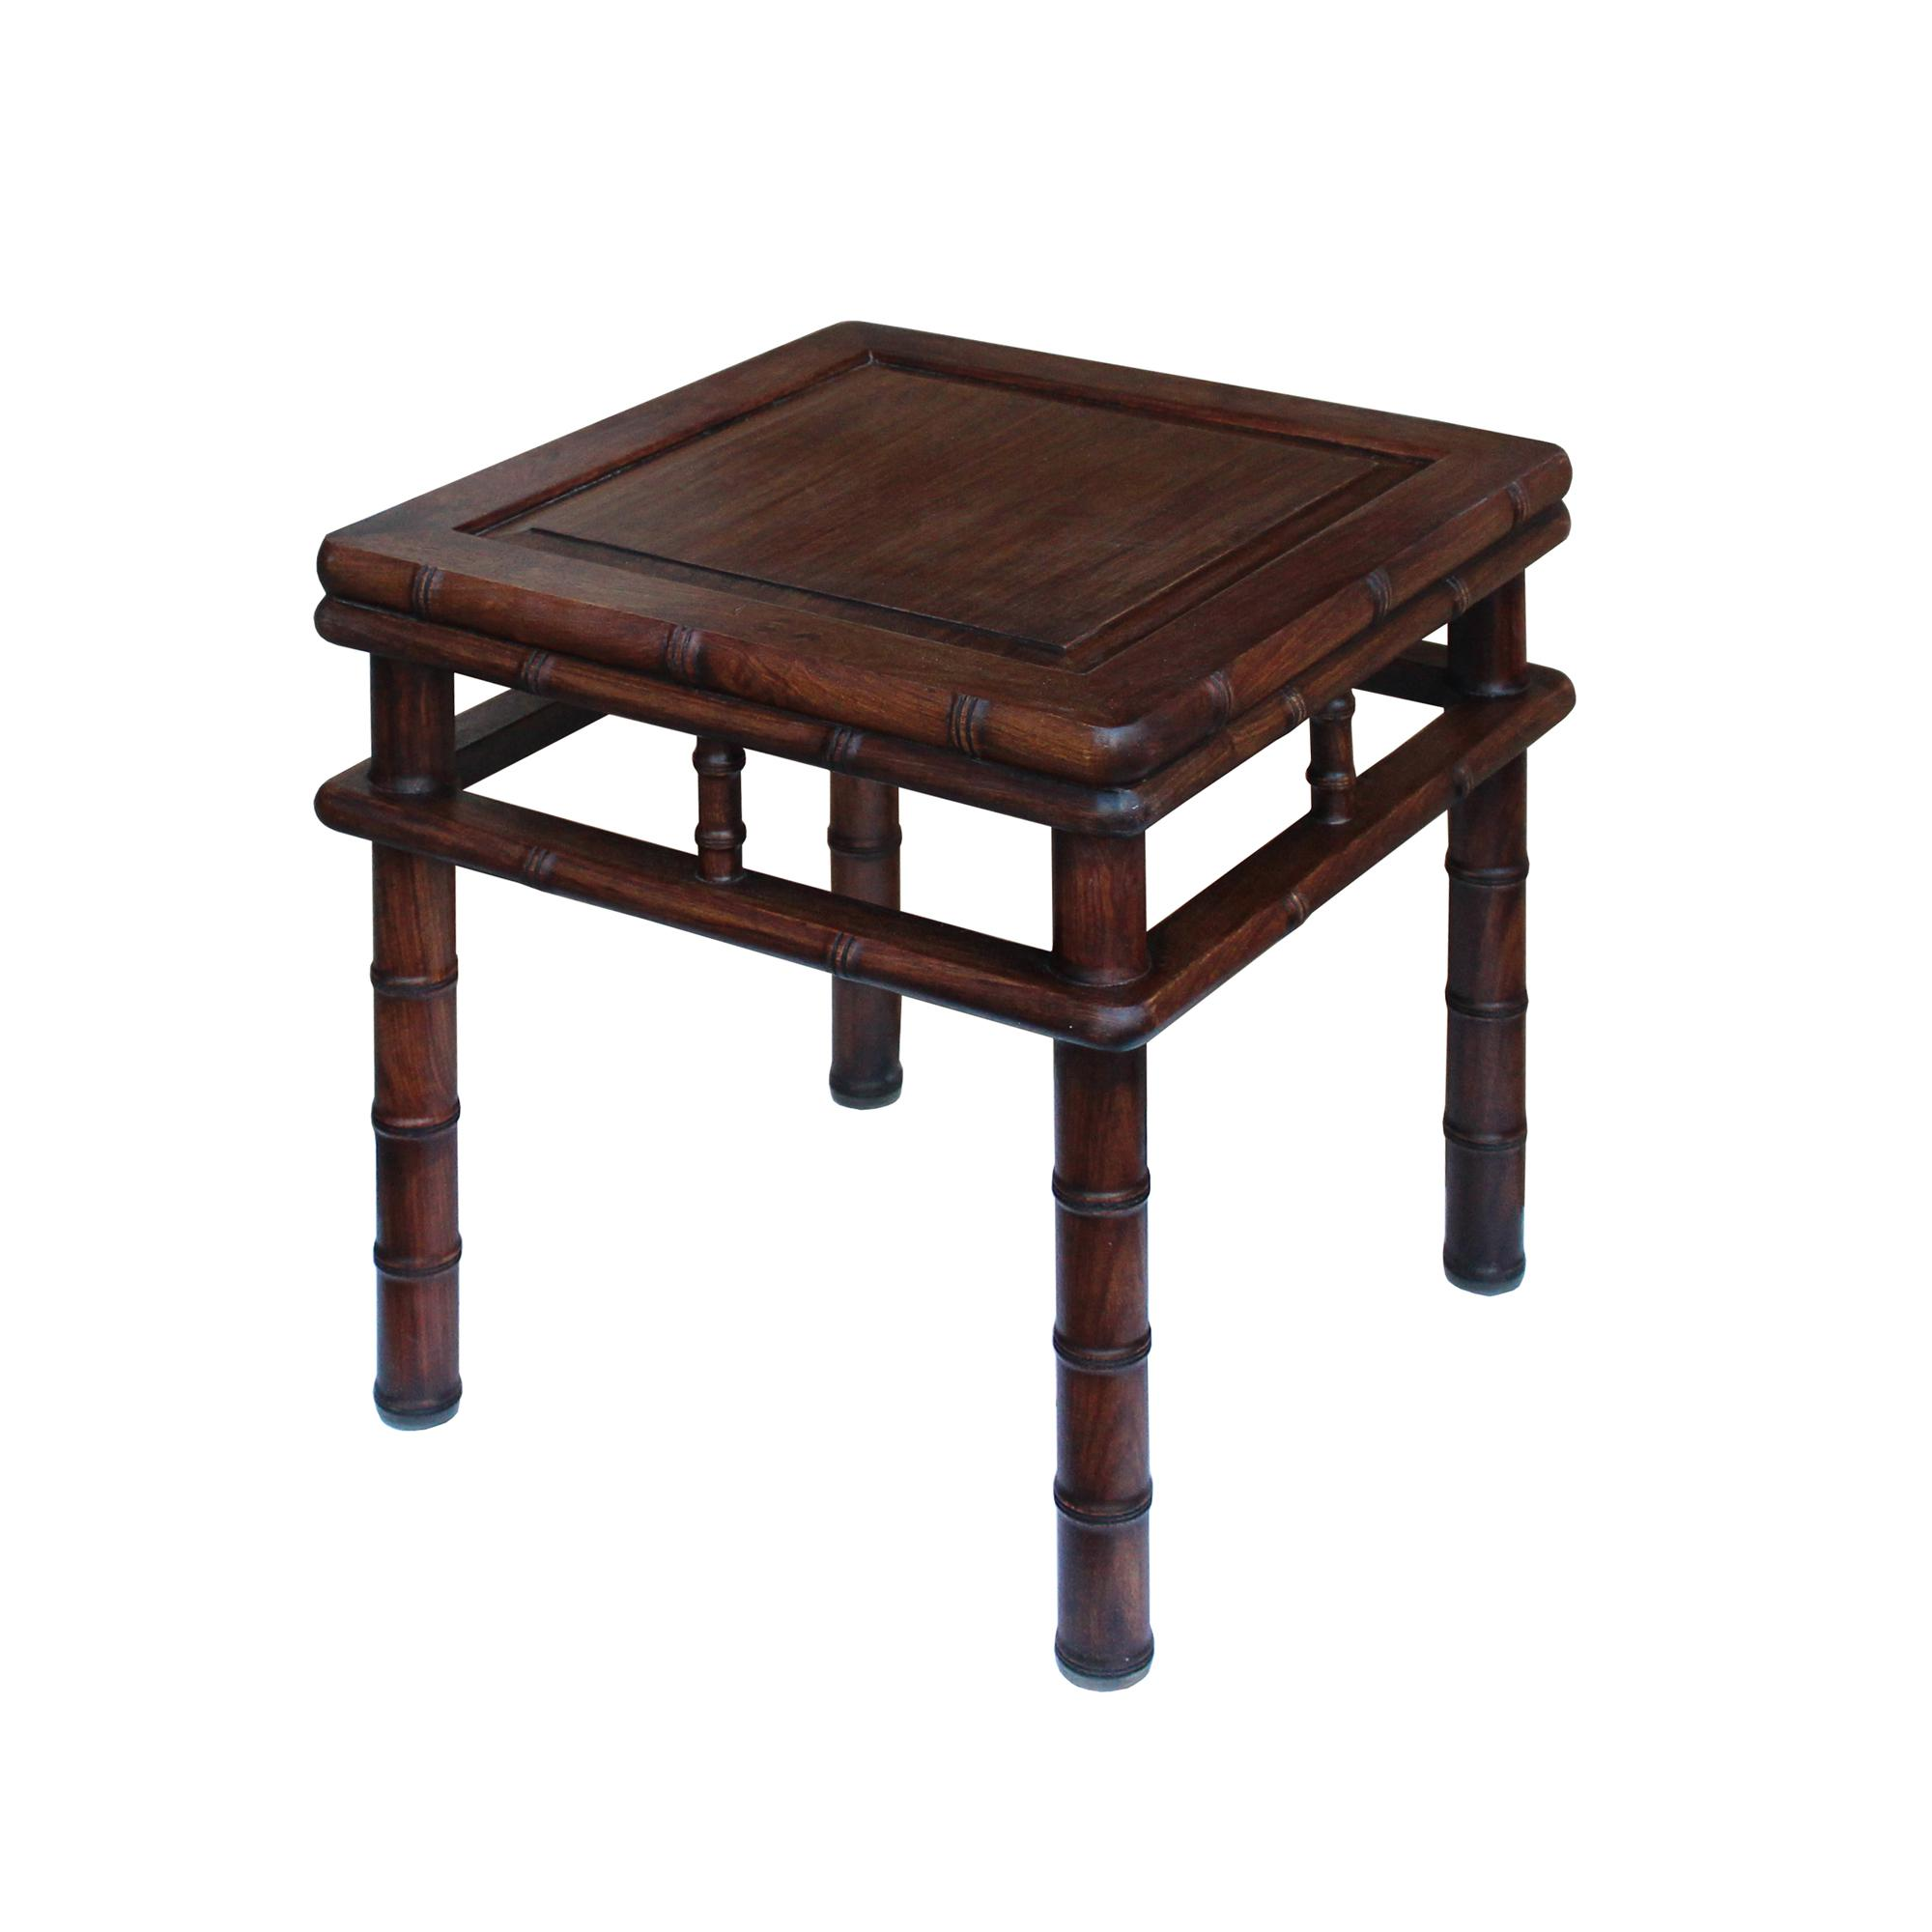 stool chair in chinese back pillow for brown huali rosewood square table chairish sale image 4 of 8